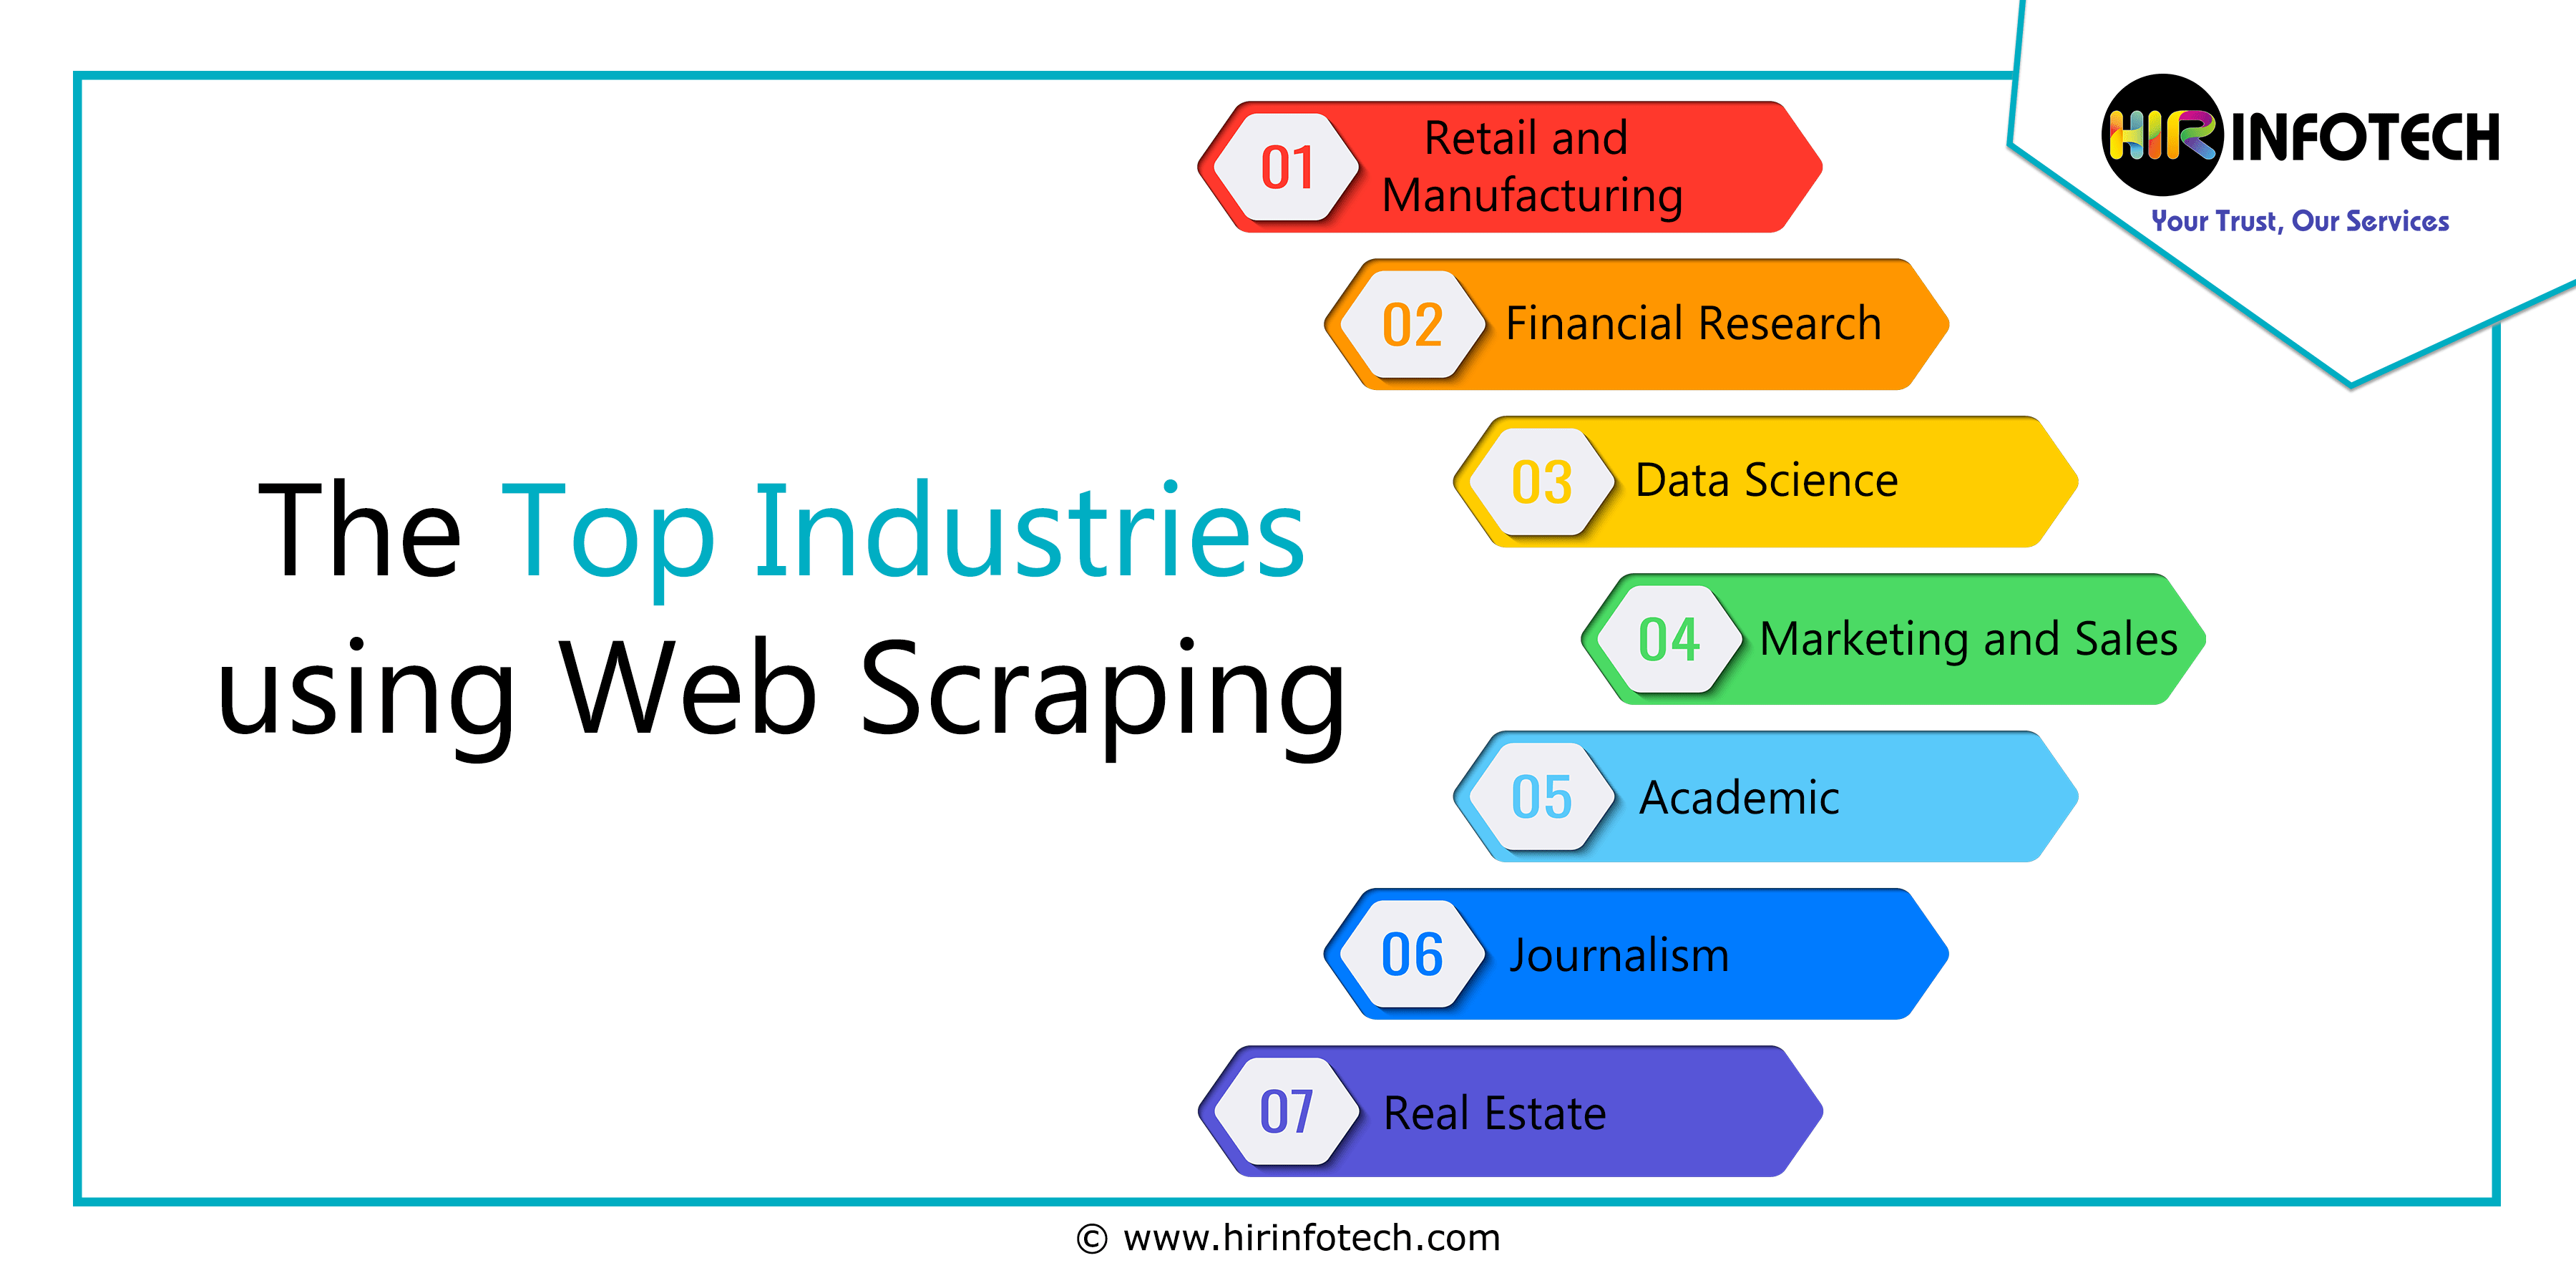 Web Scraping Services for Top Industries